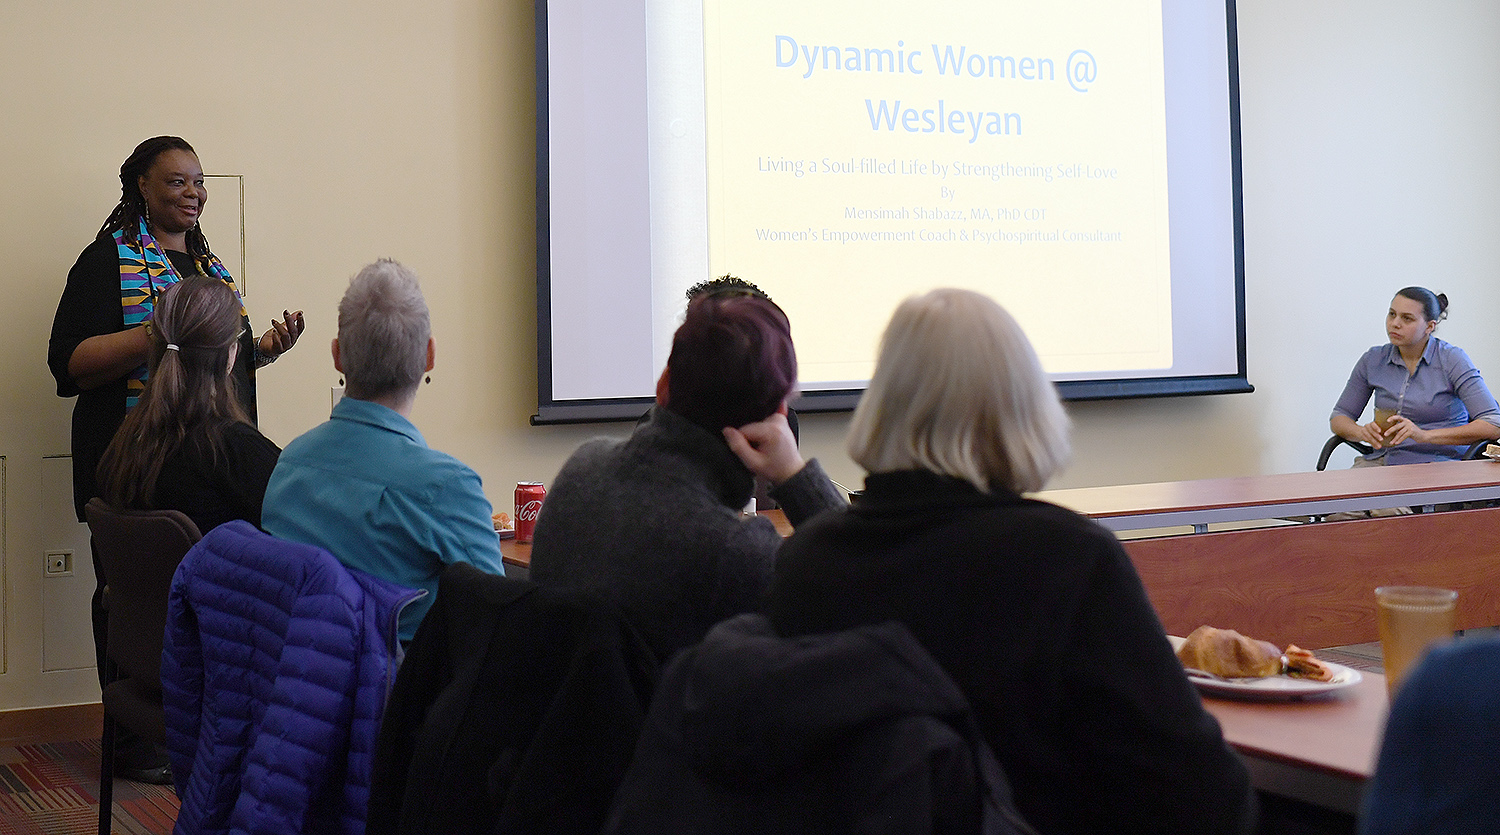 "On Feb. 13, Wesleyan's Dynamic Women@Wes organization hosted a workshop on ""Living a Soul-filled Life by Strengthening Self-Love."" Inspirational speaker Mensimah Shabazz led a meditation and discussed that focused on creative ways of generating self-confidence, fearlessness and inner wisdom. Shabazz is the president of AGAPE Consulting, which focuses on energy healing and psychospirituality."